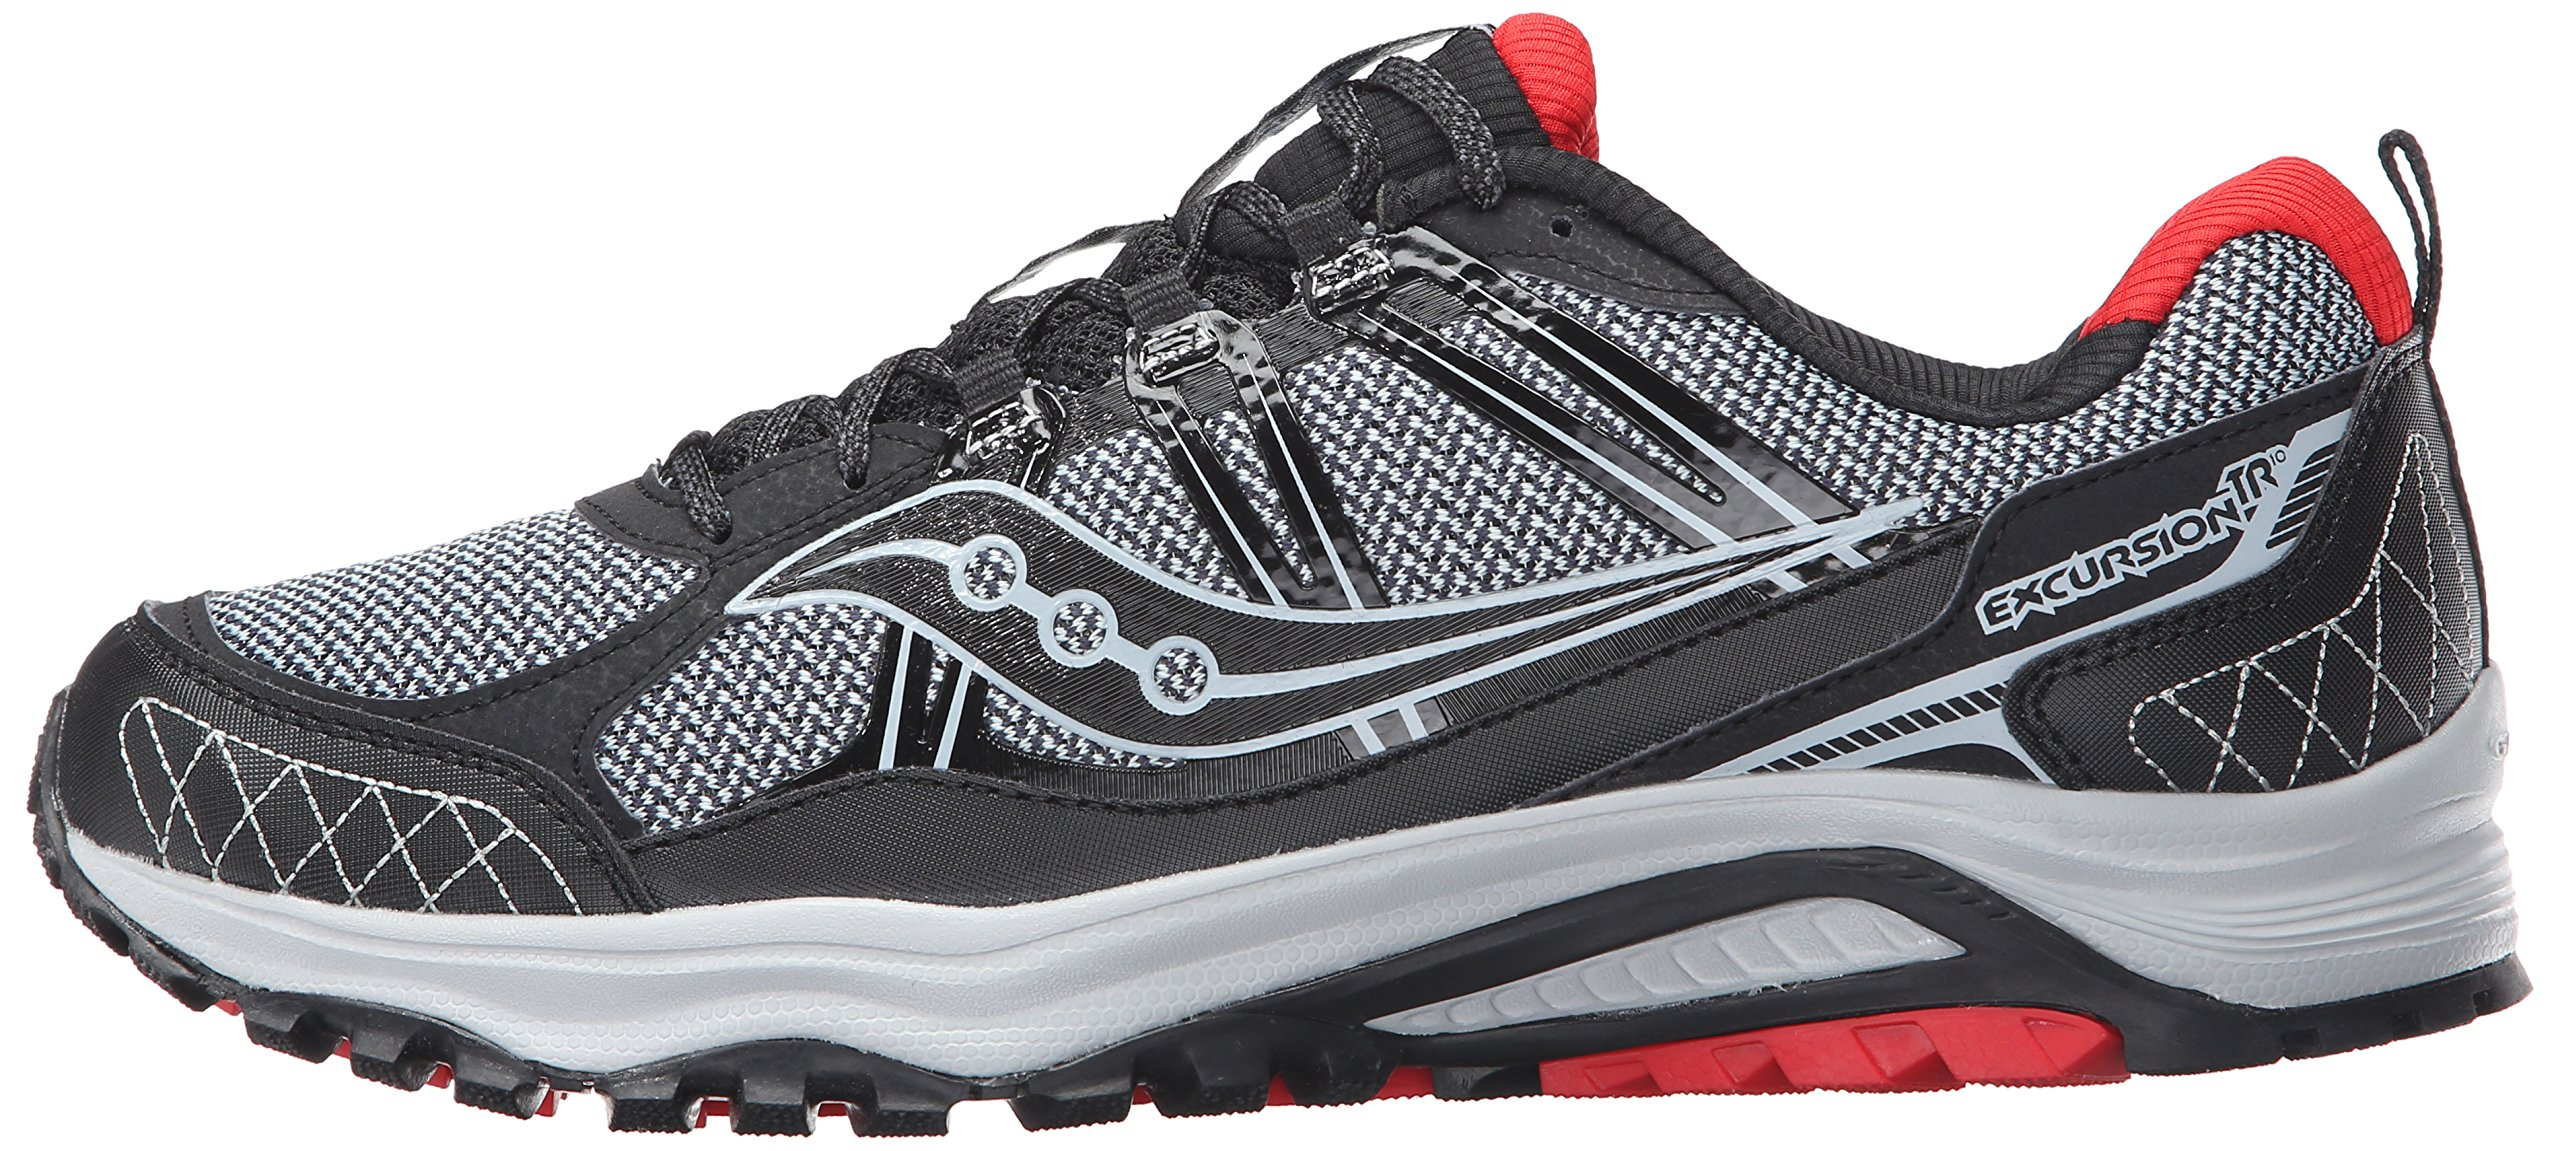 Saucony Men's Grid Excursion TR10 Running Shoe, Grey/Black/Red, 8 M US by Saucony (Image #5)